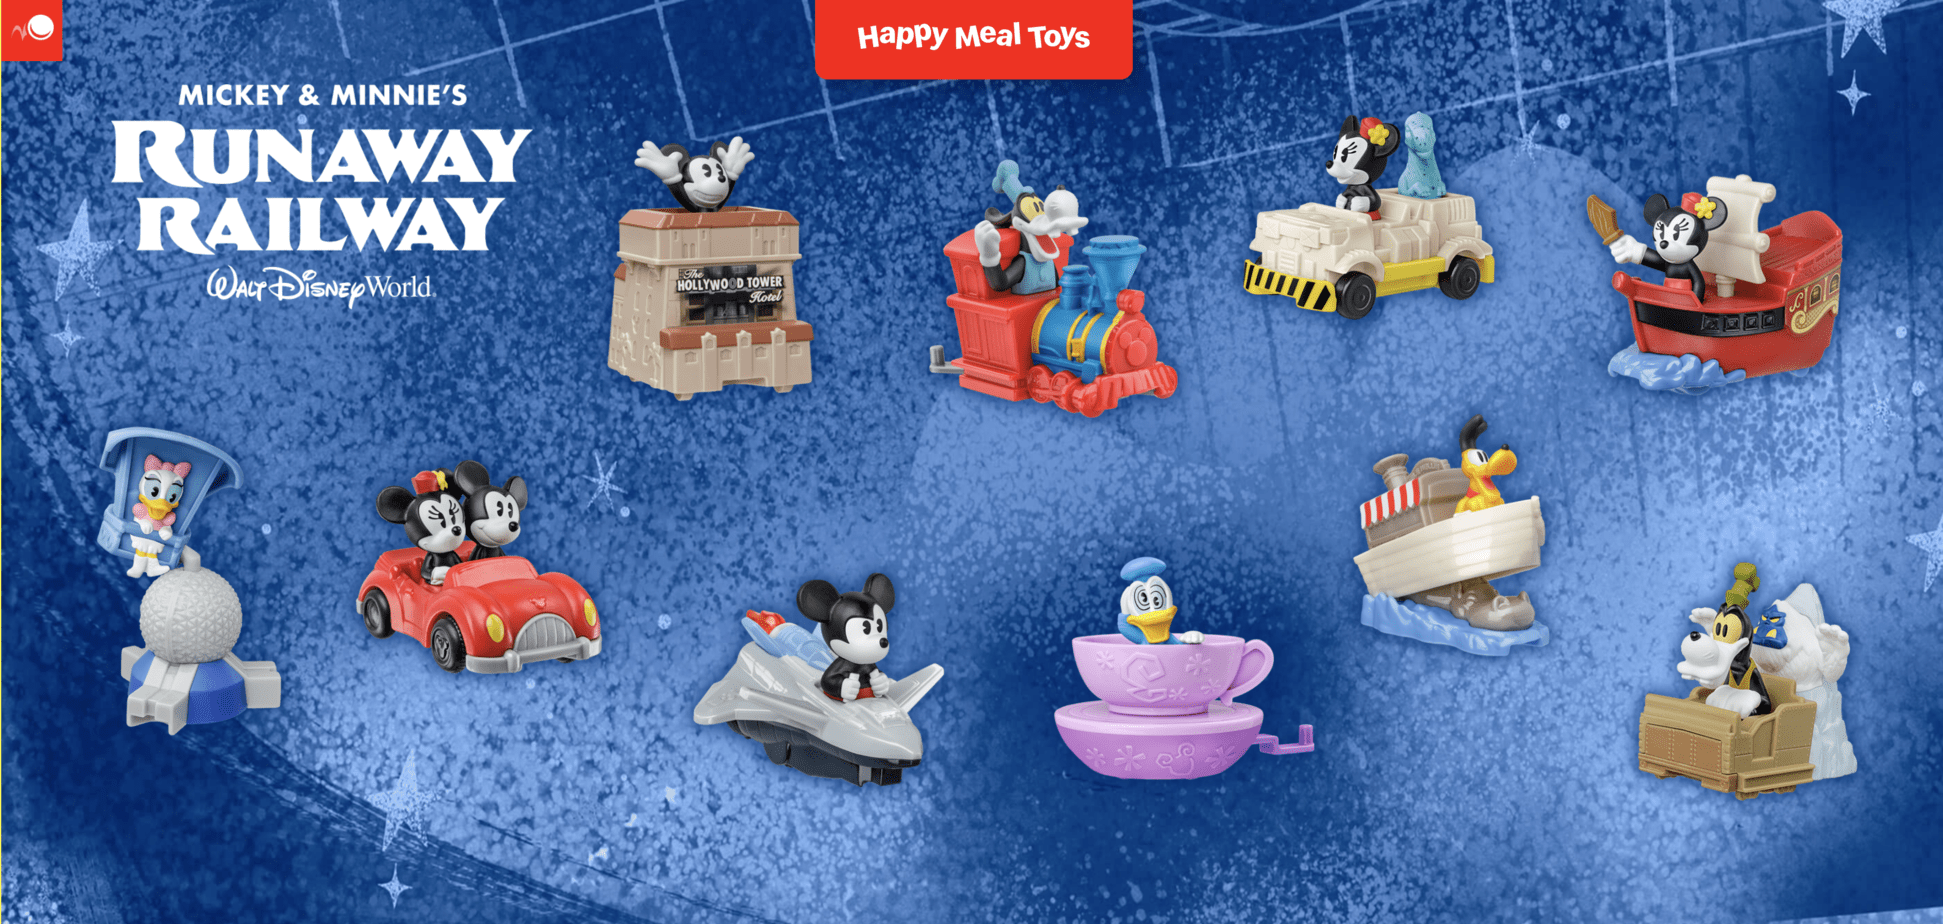 McDonald's Release Disney Attraction Happy Meal Toys 3